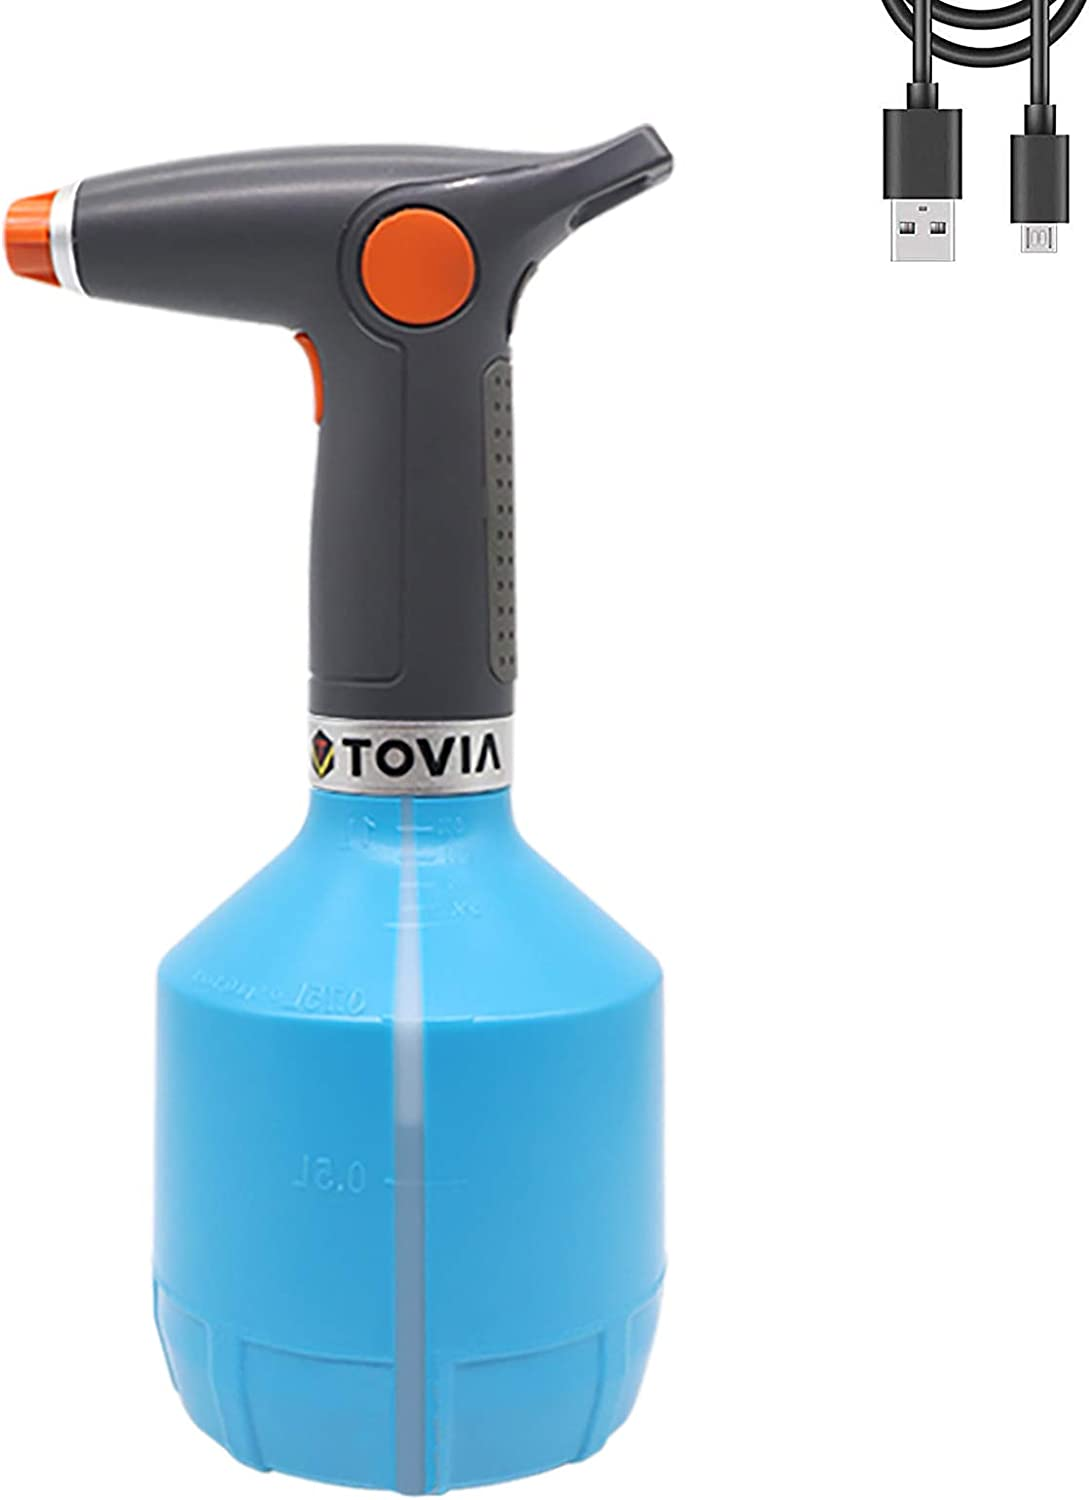 T TOVIA Automatic Electric Garden Sprayer 1L, Battery Powered USB Rechargeable Fine Mist to Stream Spray Bottle with Adjustable Flow Tip for Gardening, Fertilizing, Household Cleaning (Blue)